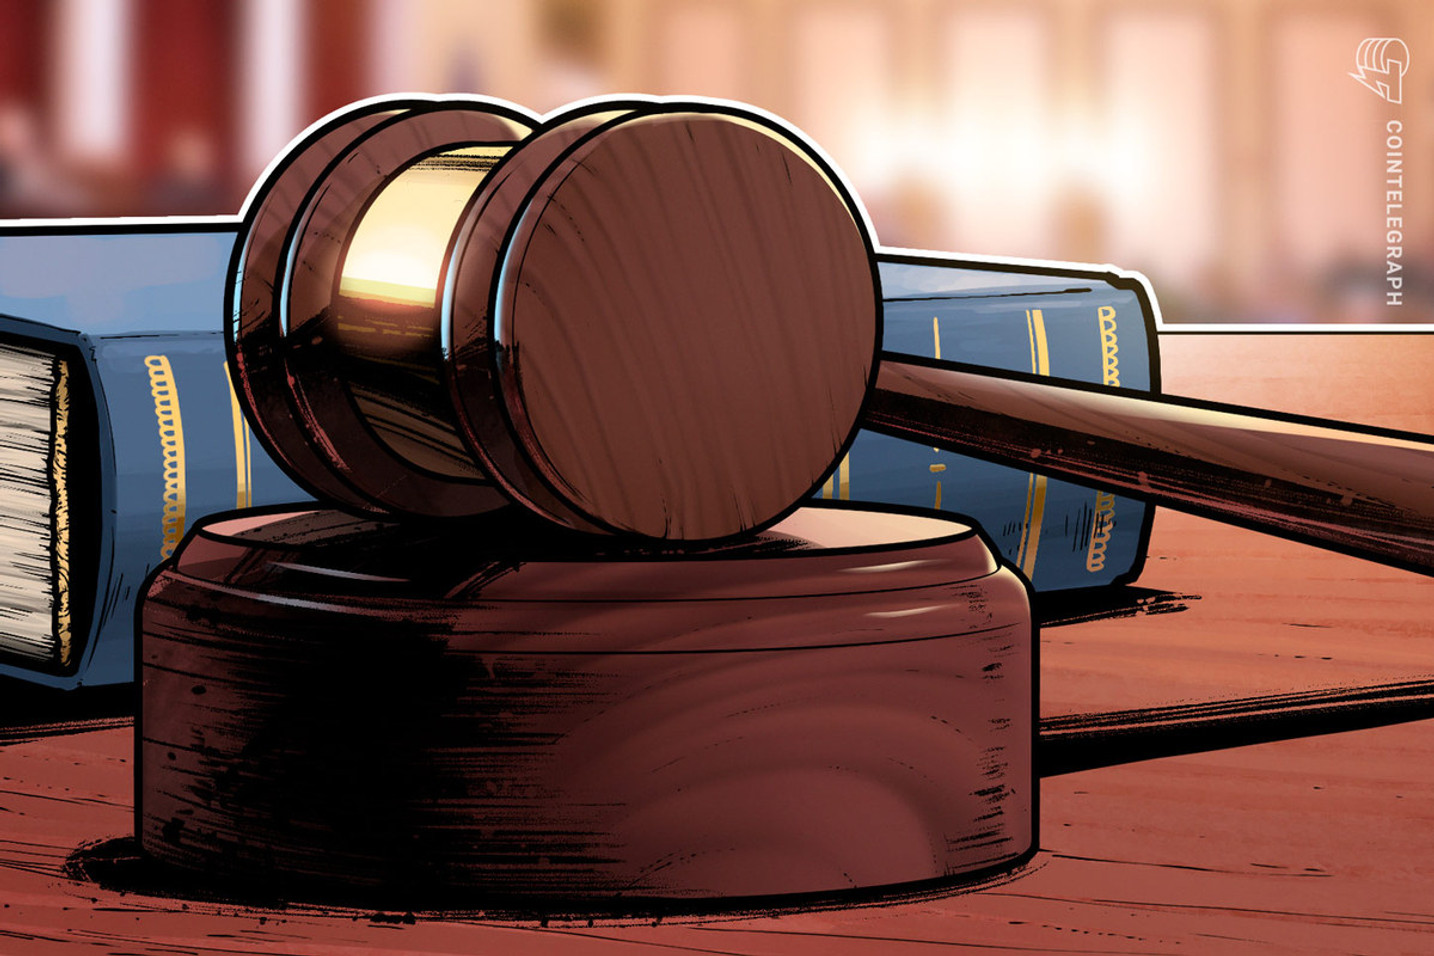 Crypto Capital owner's attorneys no longer want to represent him